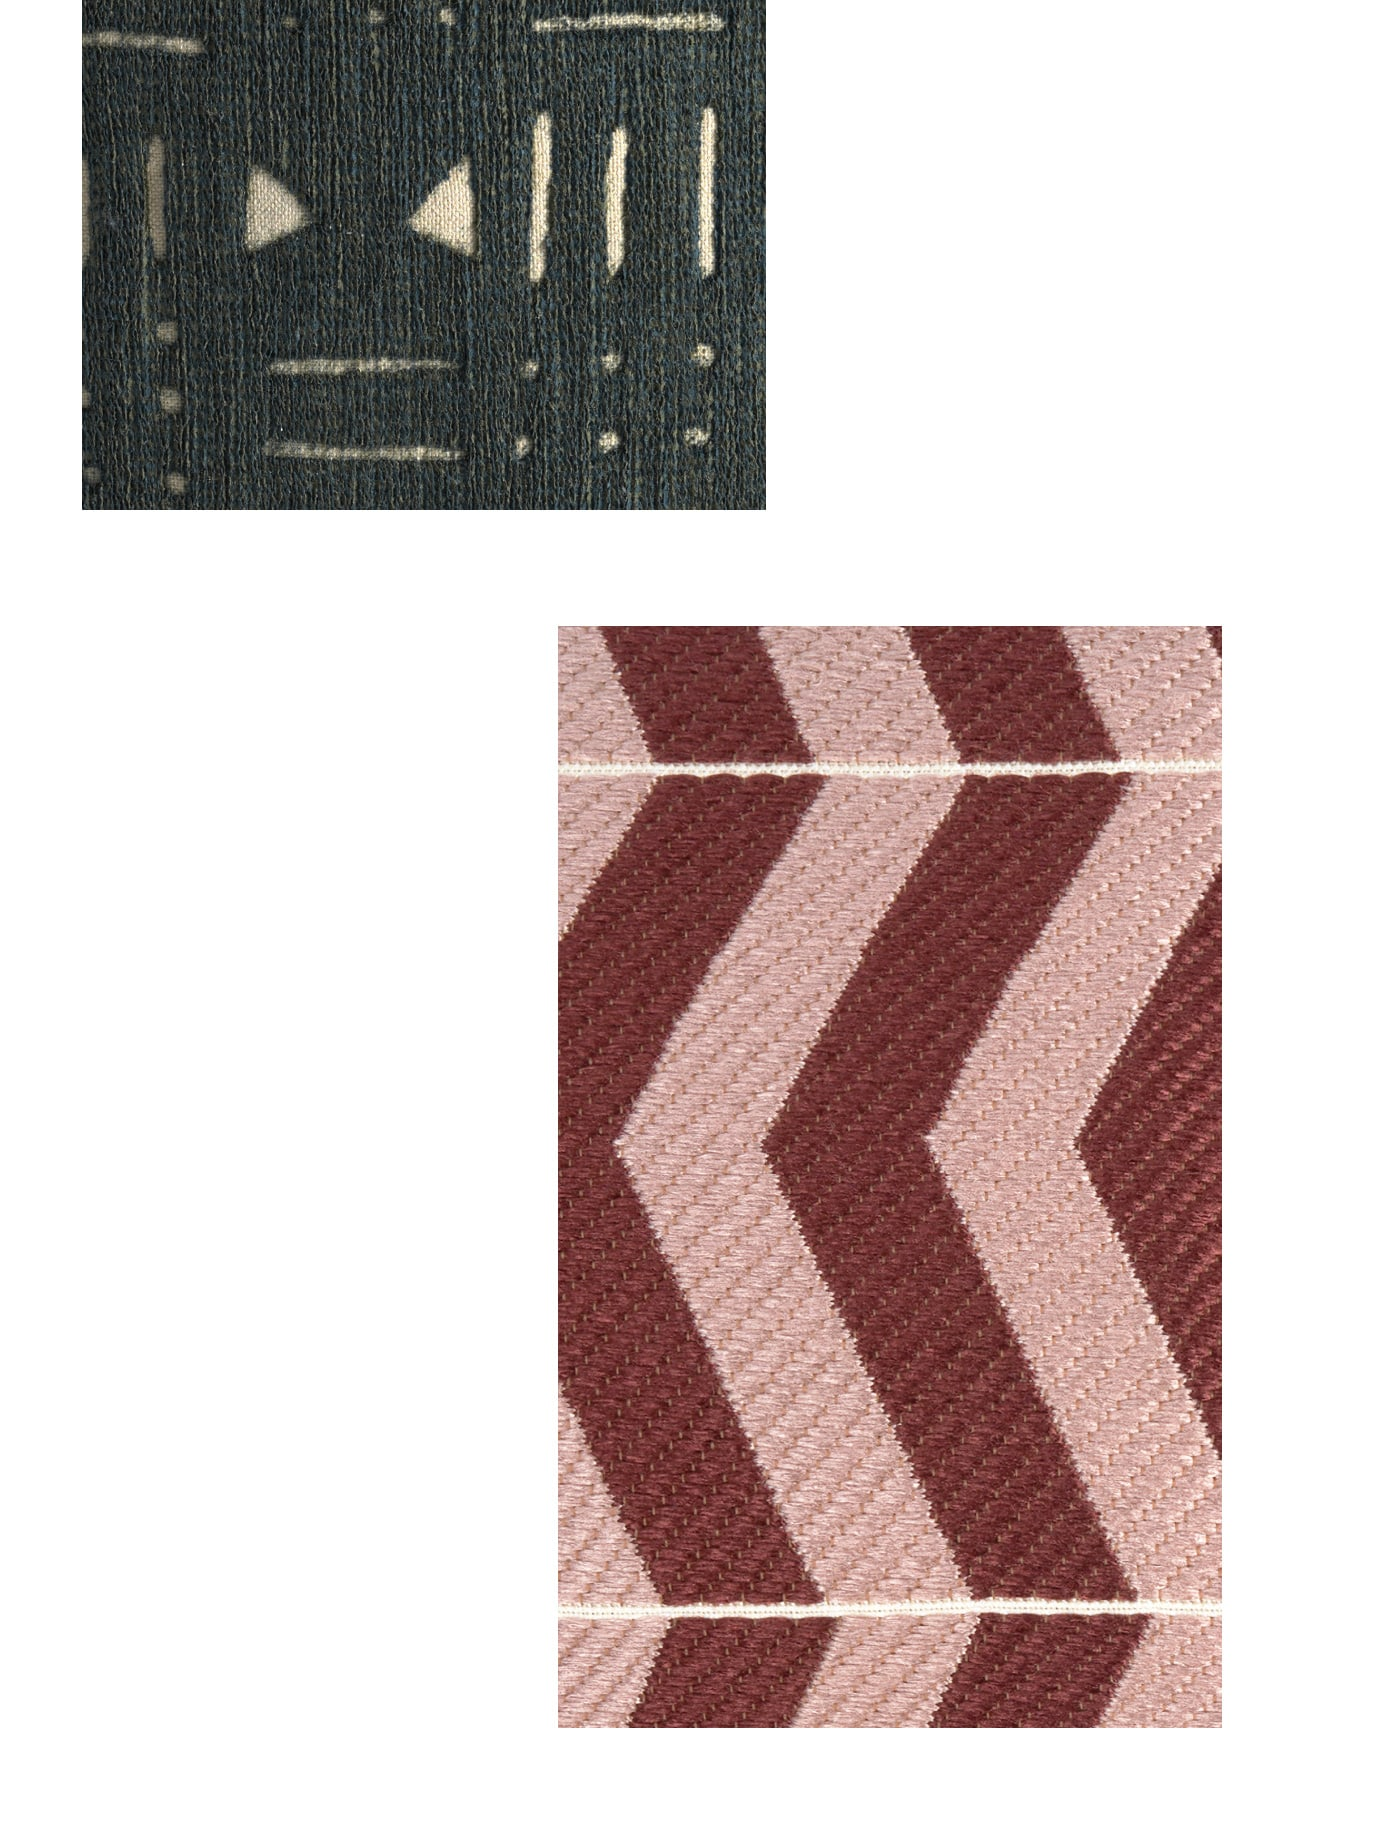 Two fabric swatches.